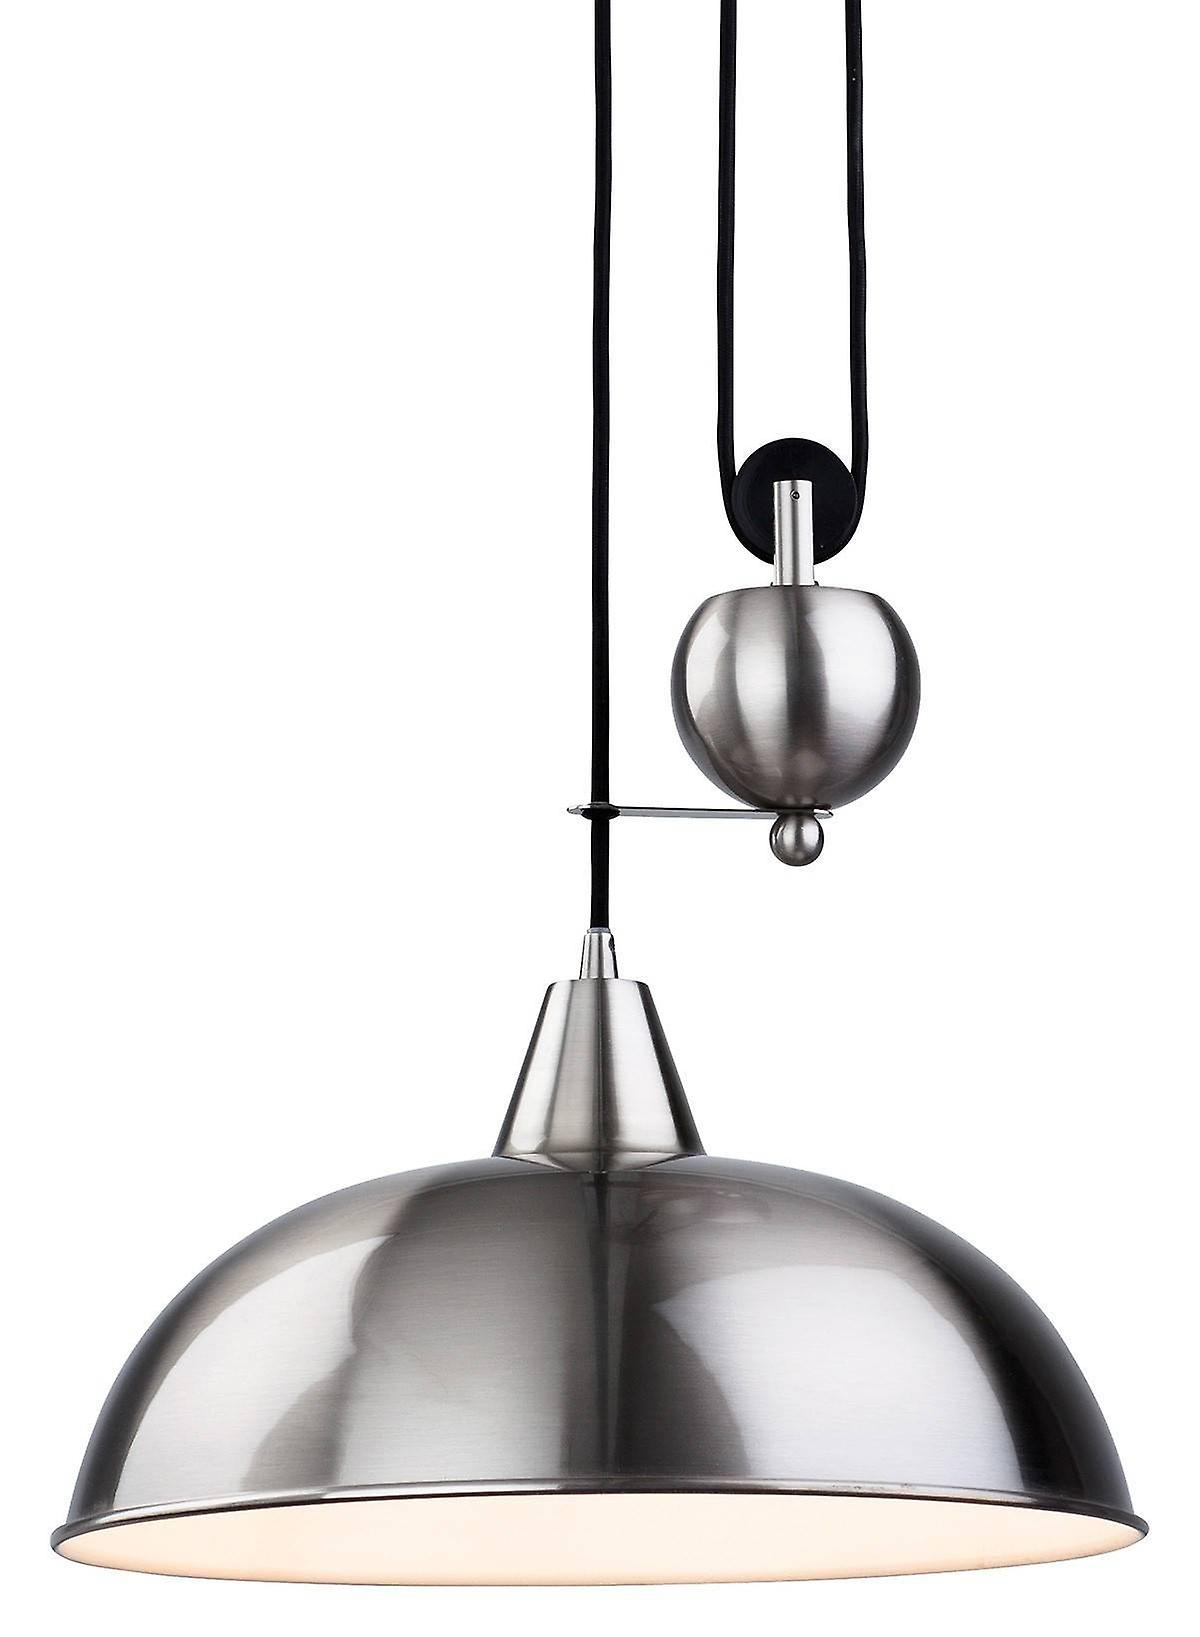 1 Light Rise & Fall Dome Ceiling Pendant Brushed Steel, E27